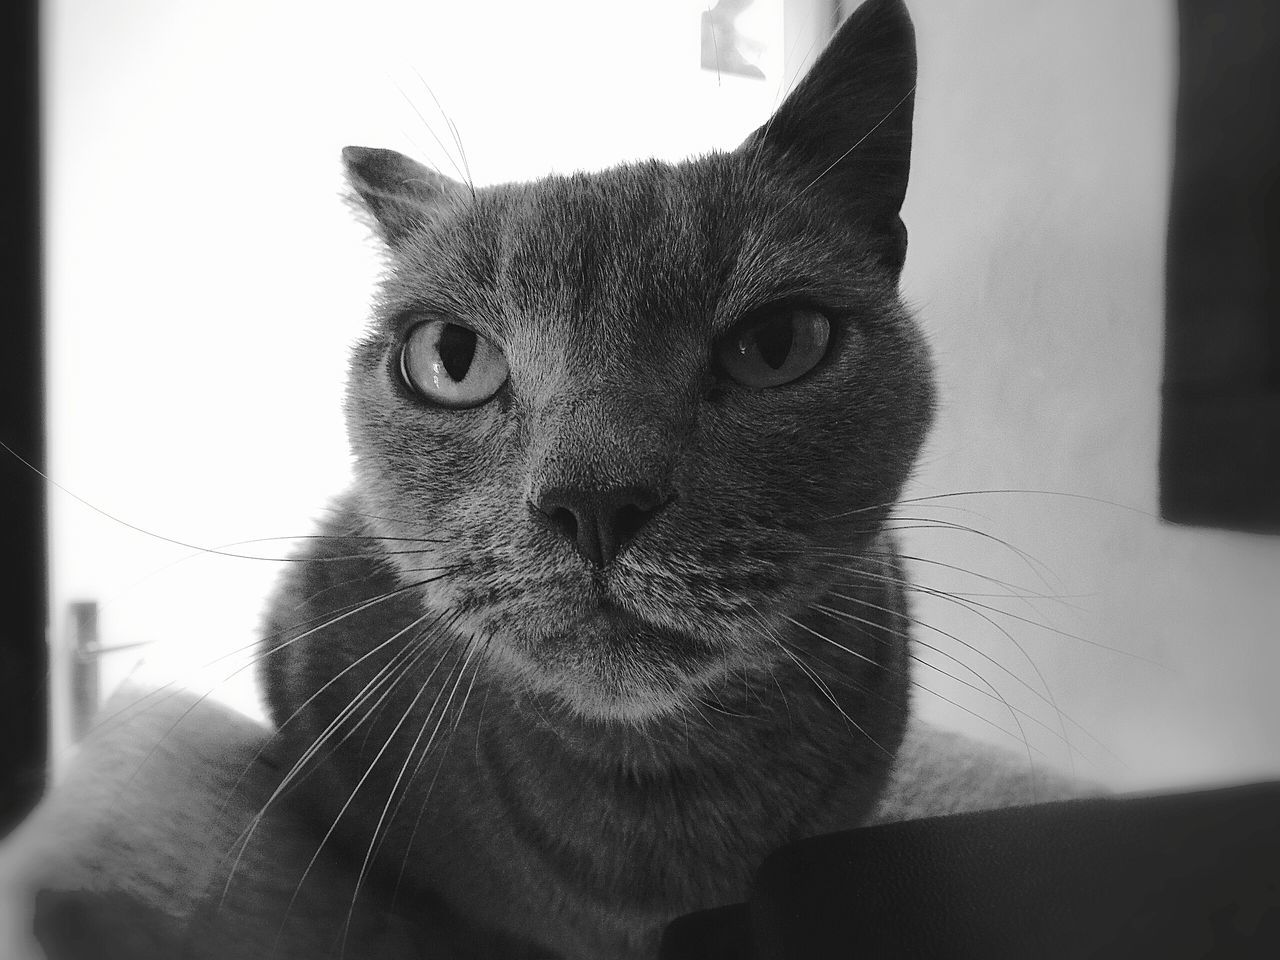 Celsius Looking At Camera Pets One Animal Domestic Animals Animal Themes Portrait Mammal Domestic Cat Indoors  Close-up No PeopleEye Feline Day Cat